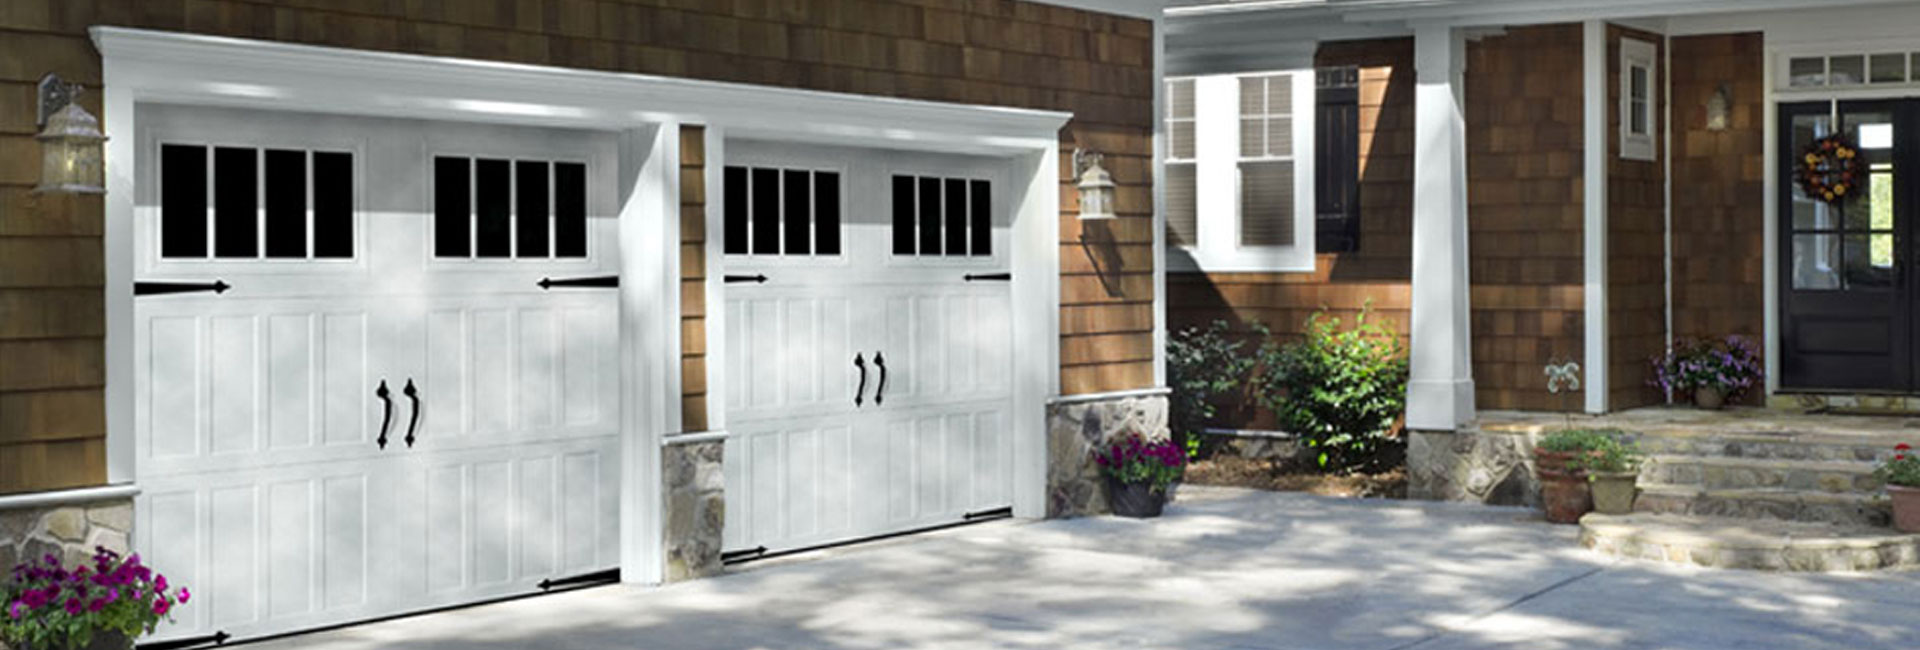 Central coast garage doors quality installation repair for Garage door repair santa cruz